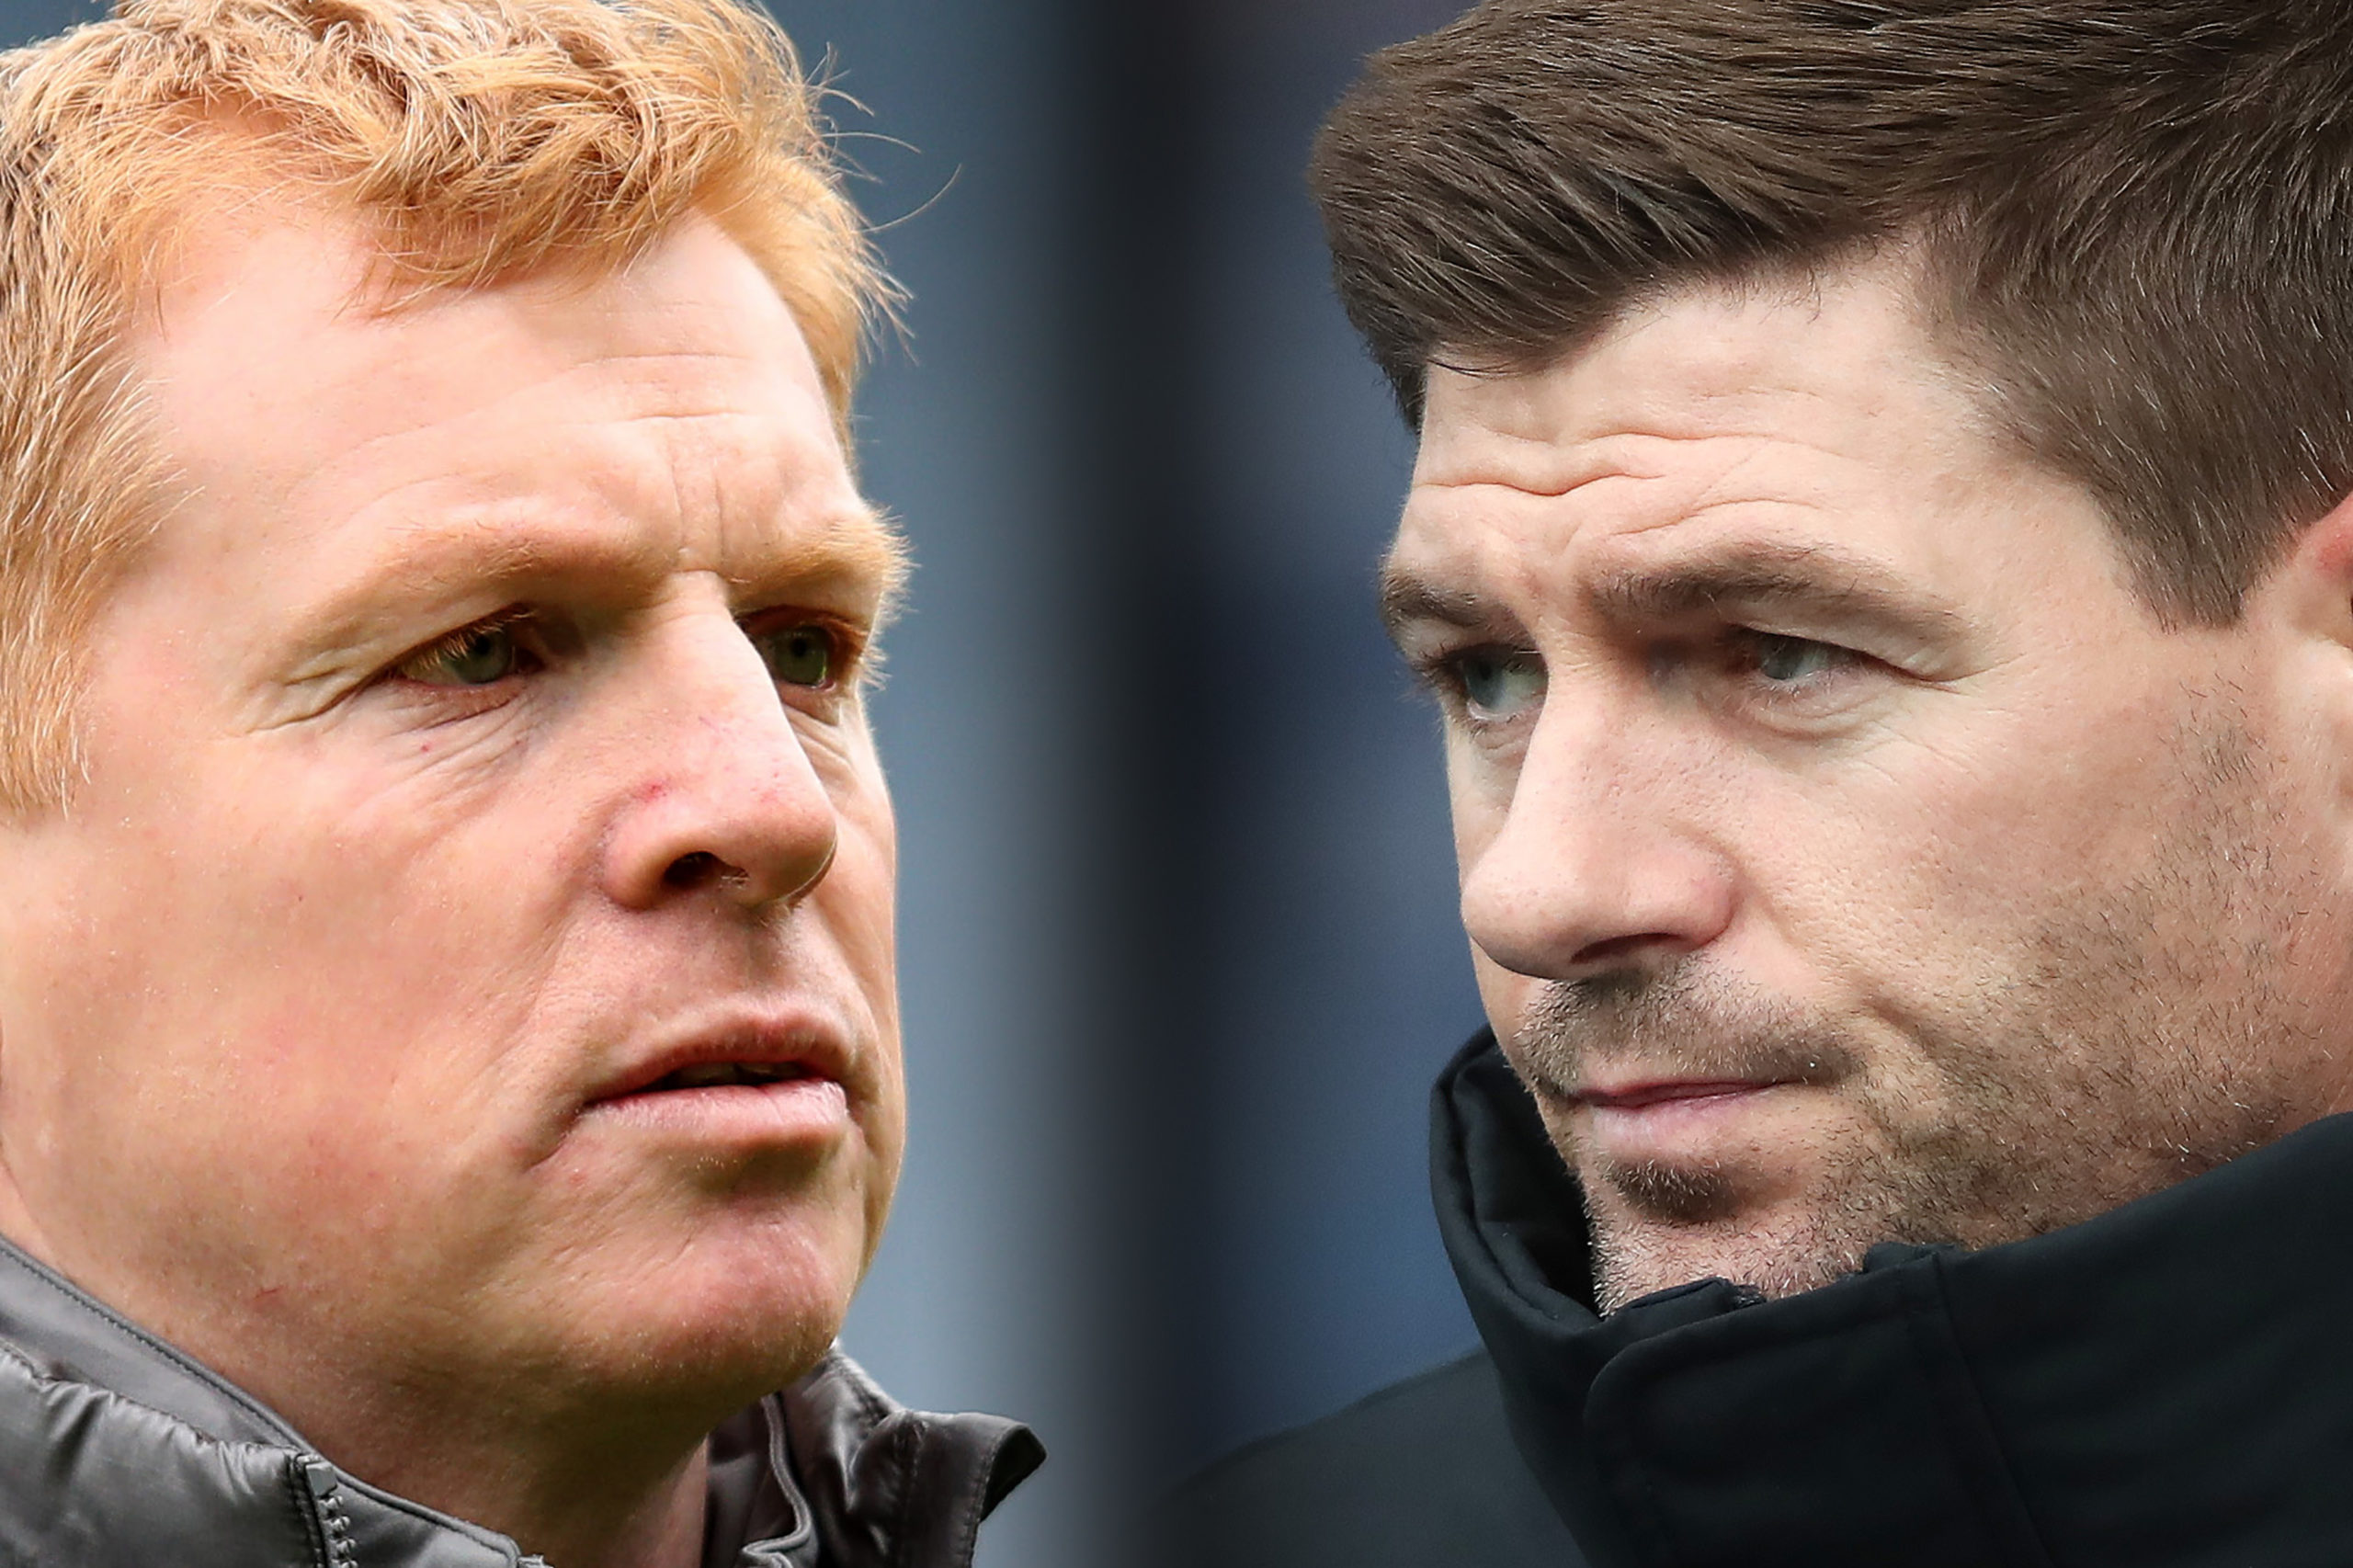 Lennon and Gerrard disagreed on the issue